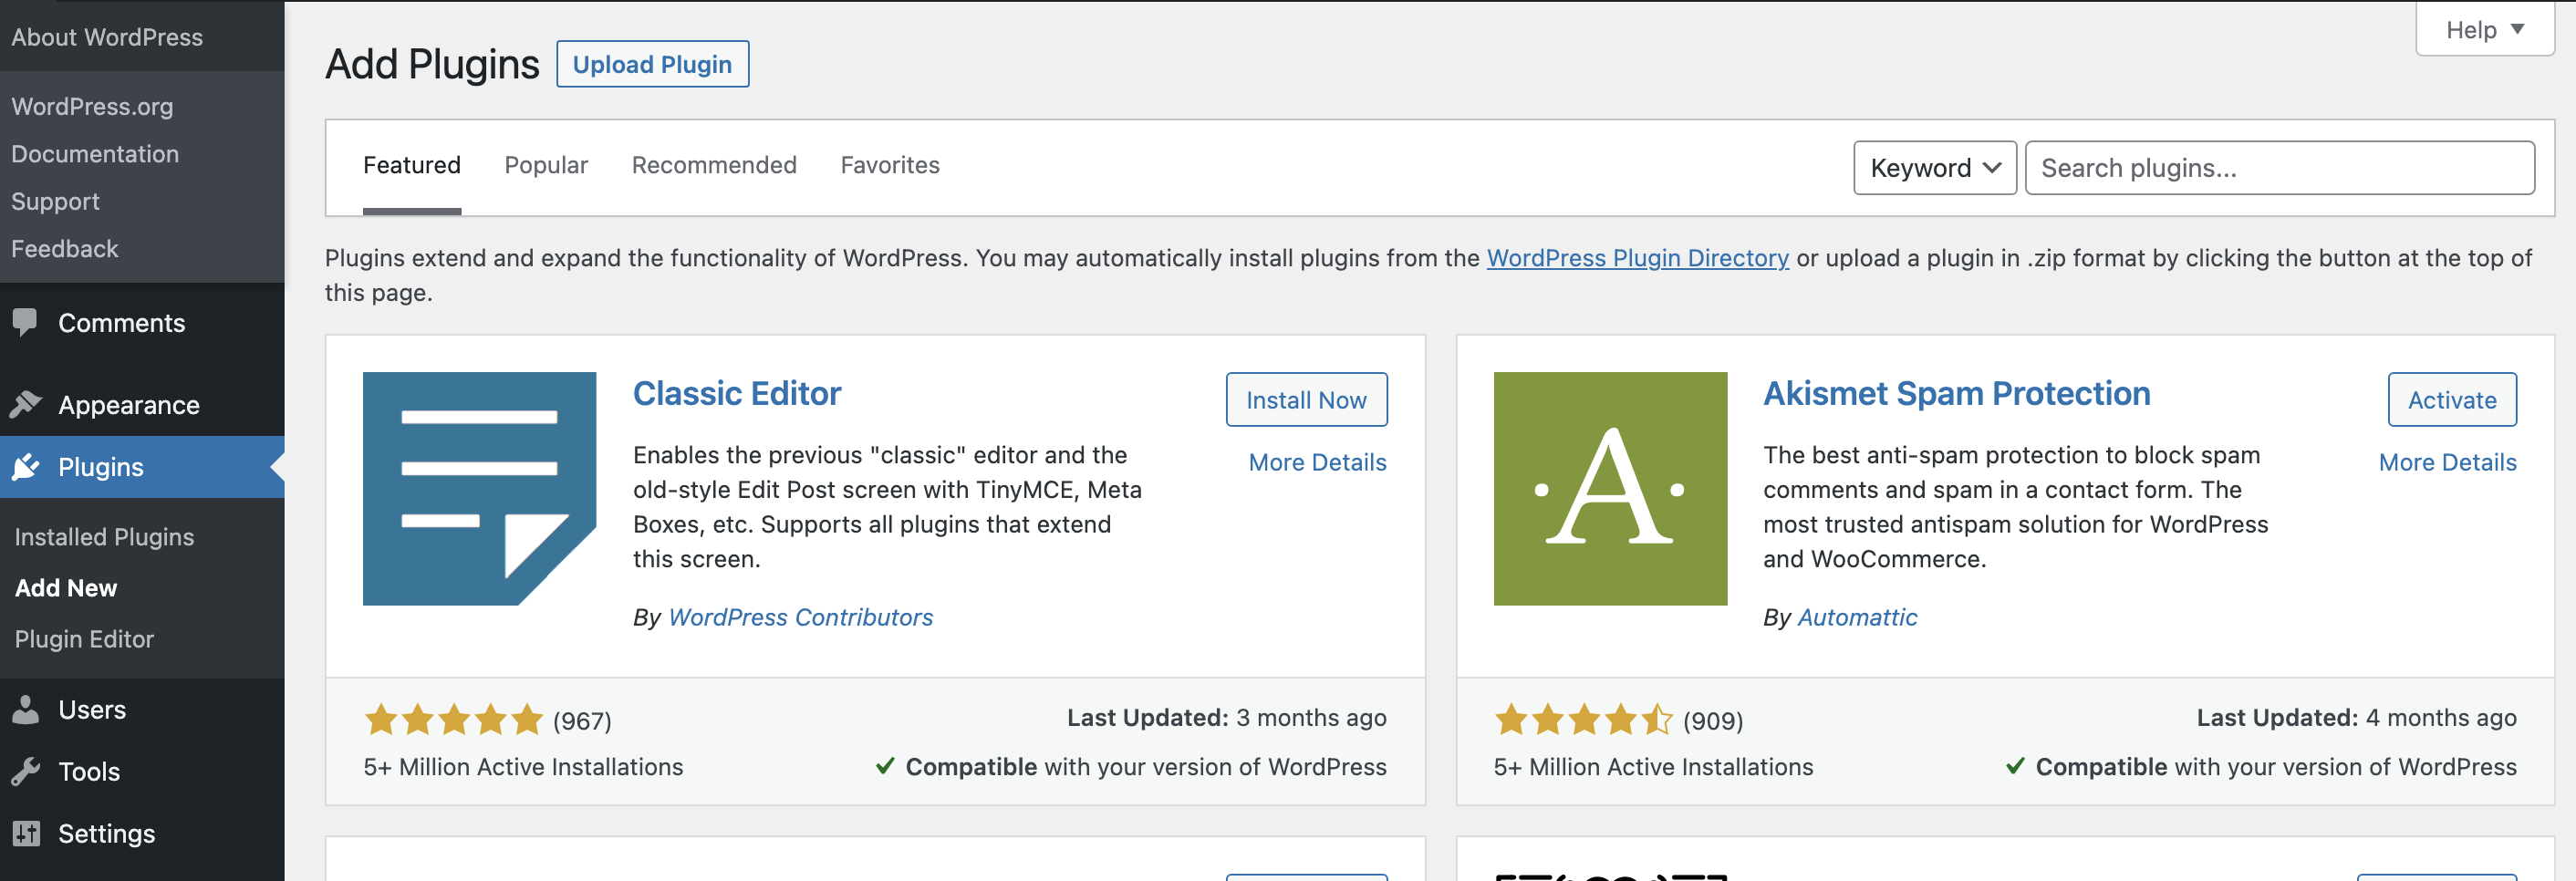 Screenshot showing the Add New link selected in the Plugins sidebar in WordPress Admin